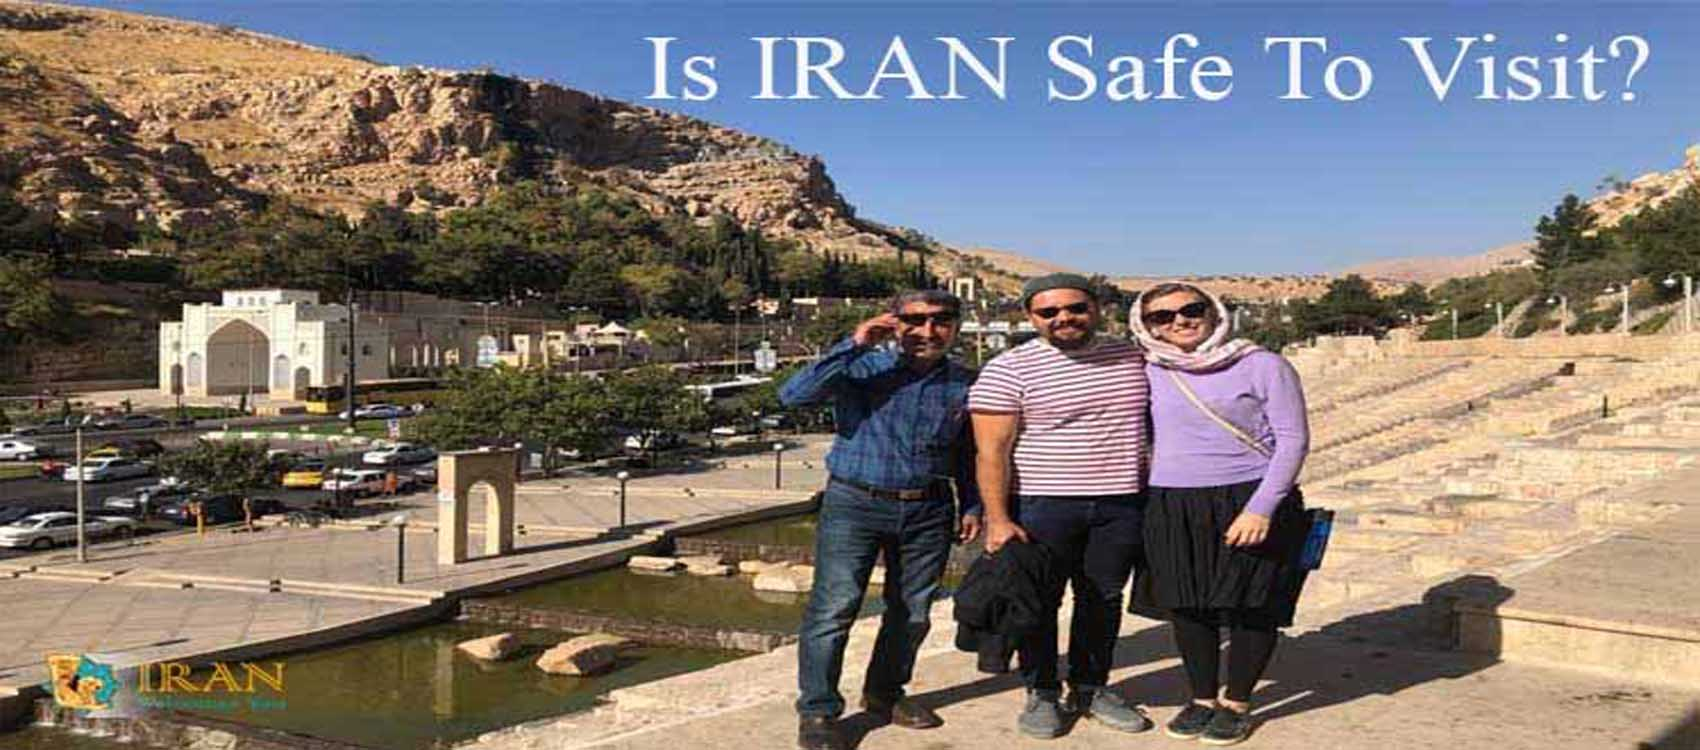 Is it safe to travel to Iran,Is Iran safe for visit,is Iran safe country to travel,Is Iran safe, Safety in Iran,Iran Safety,Iran Safety for Tourists,Iran Safety Tourism,rick steve,